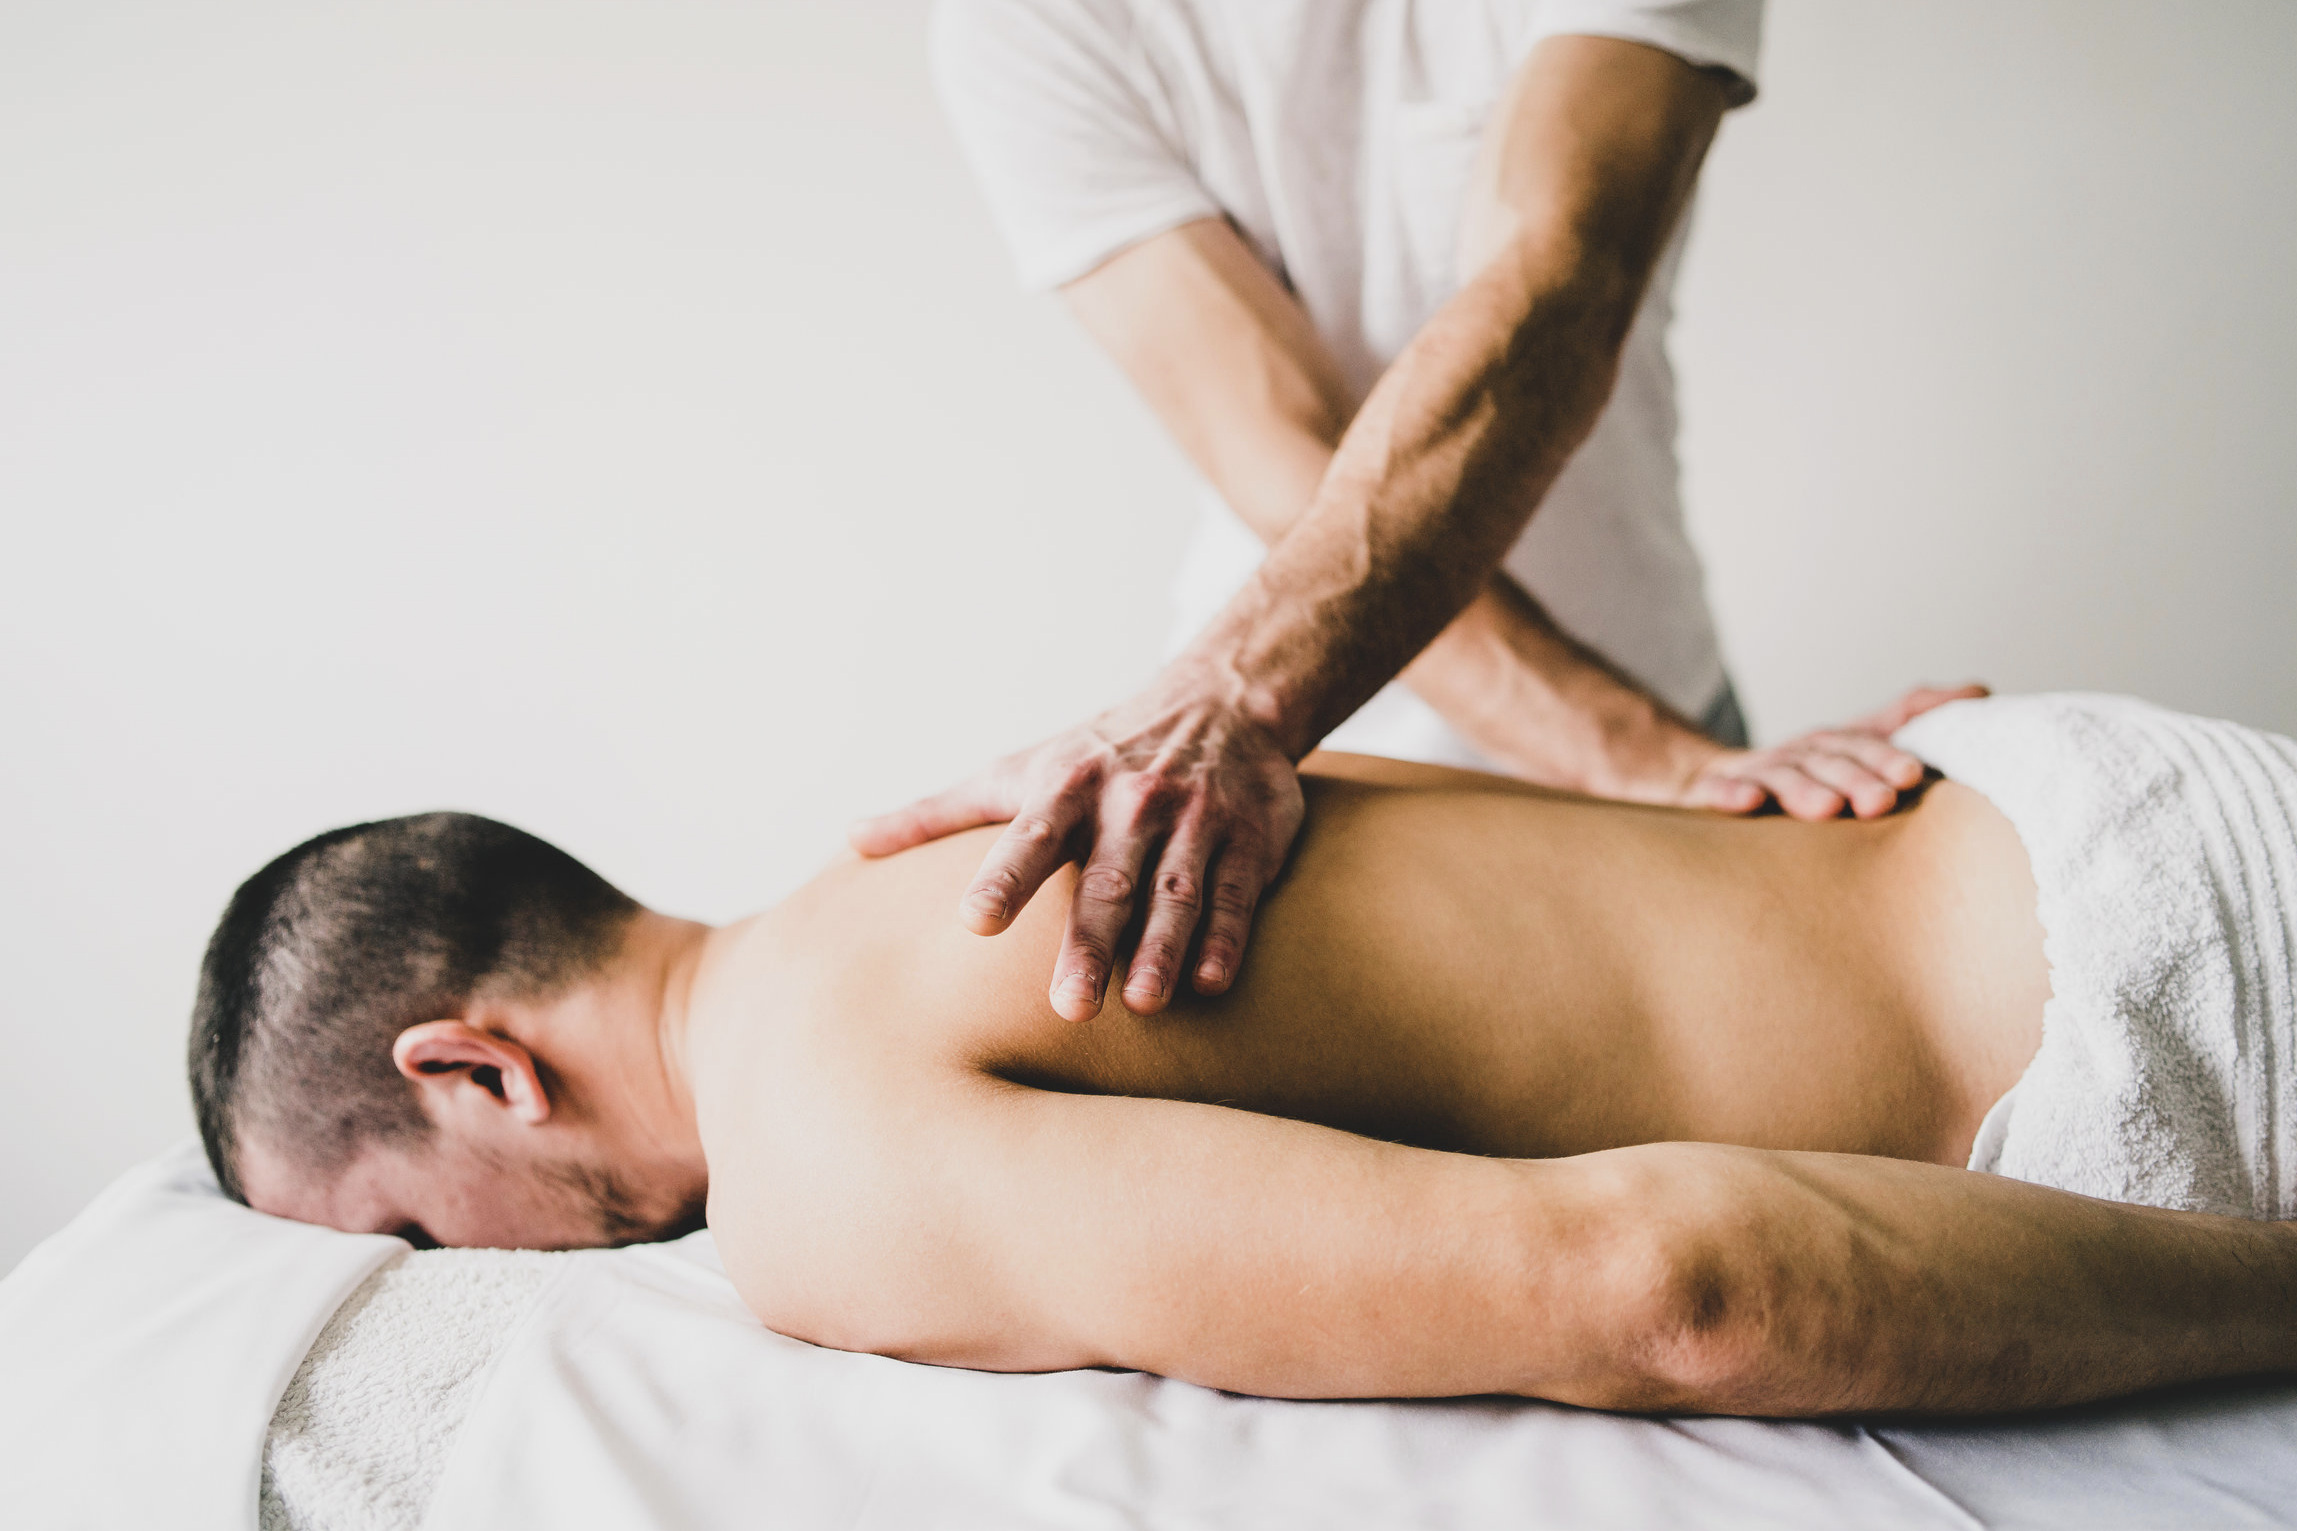 Pain Management - Having an improved sense of physical (and emotional) well-being is possible. Our pain management treatment provides:• Improvement in acute musculoskeletal pain, low back pain, headaches and joint and arthritis pain• Chronic pain management• An integrative approach to reduction of opioid medication